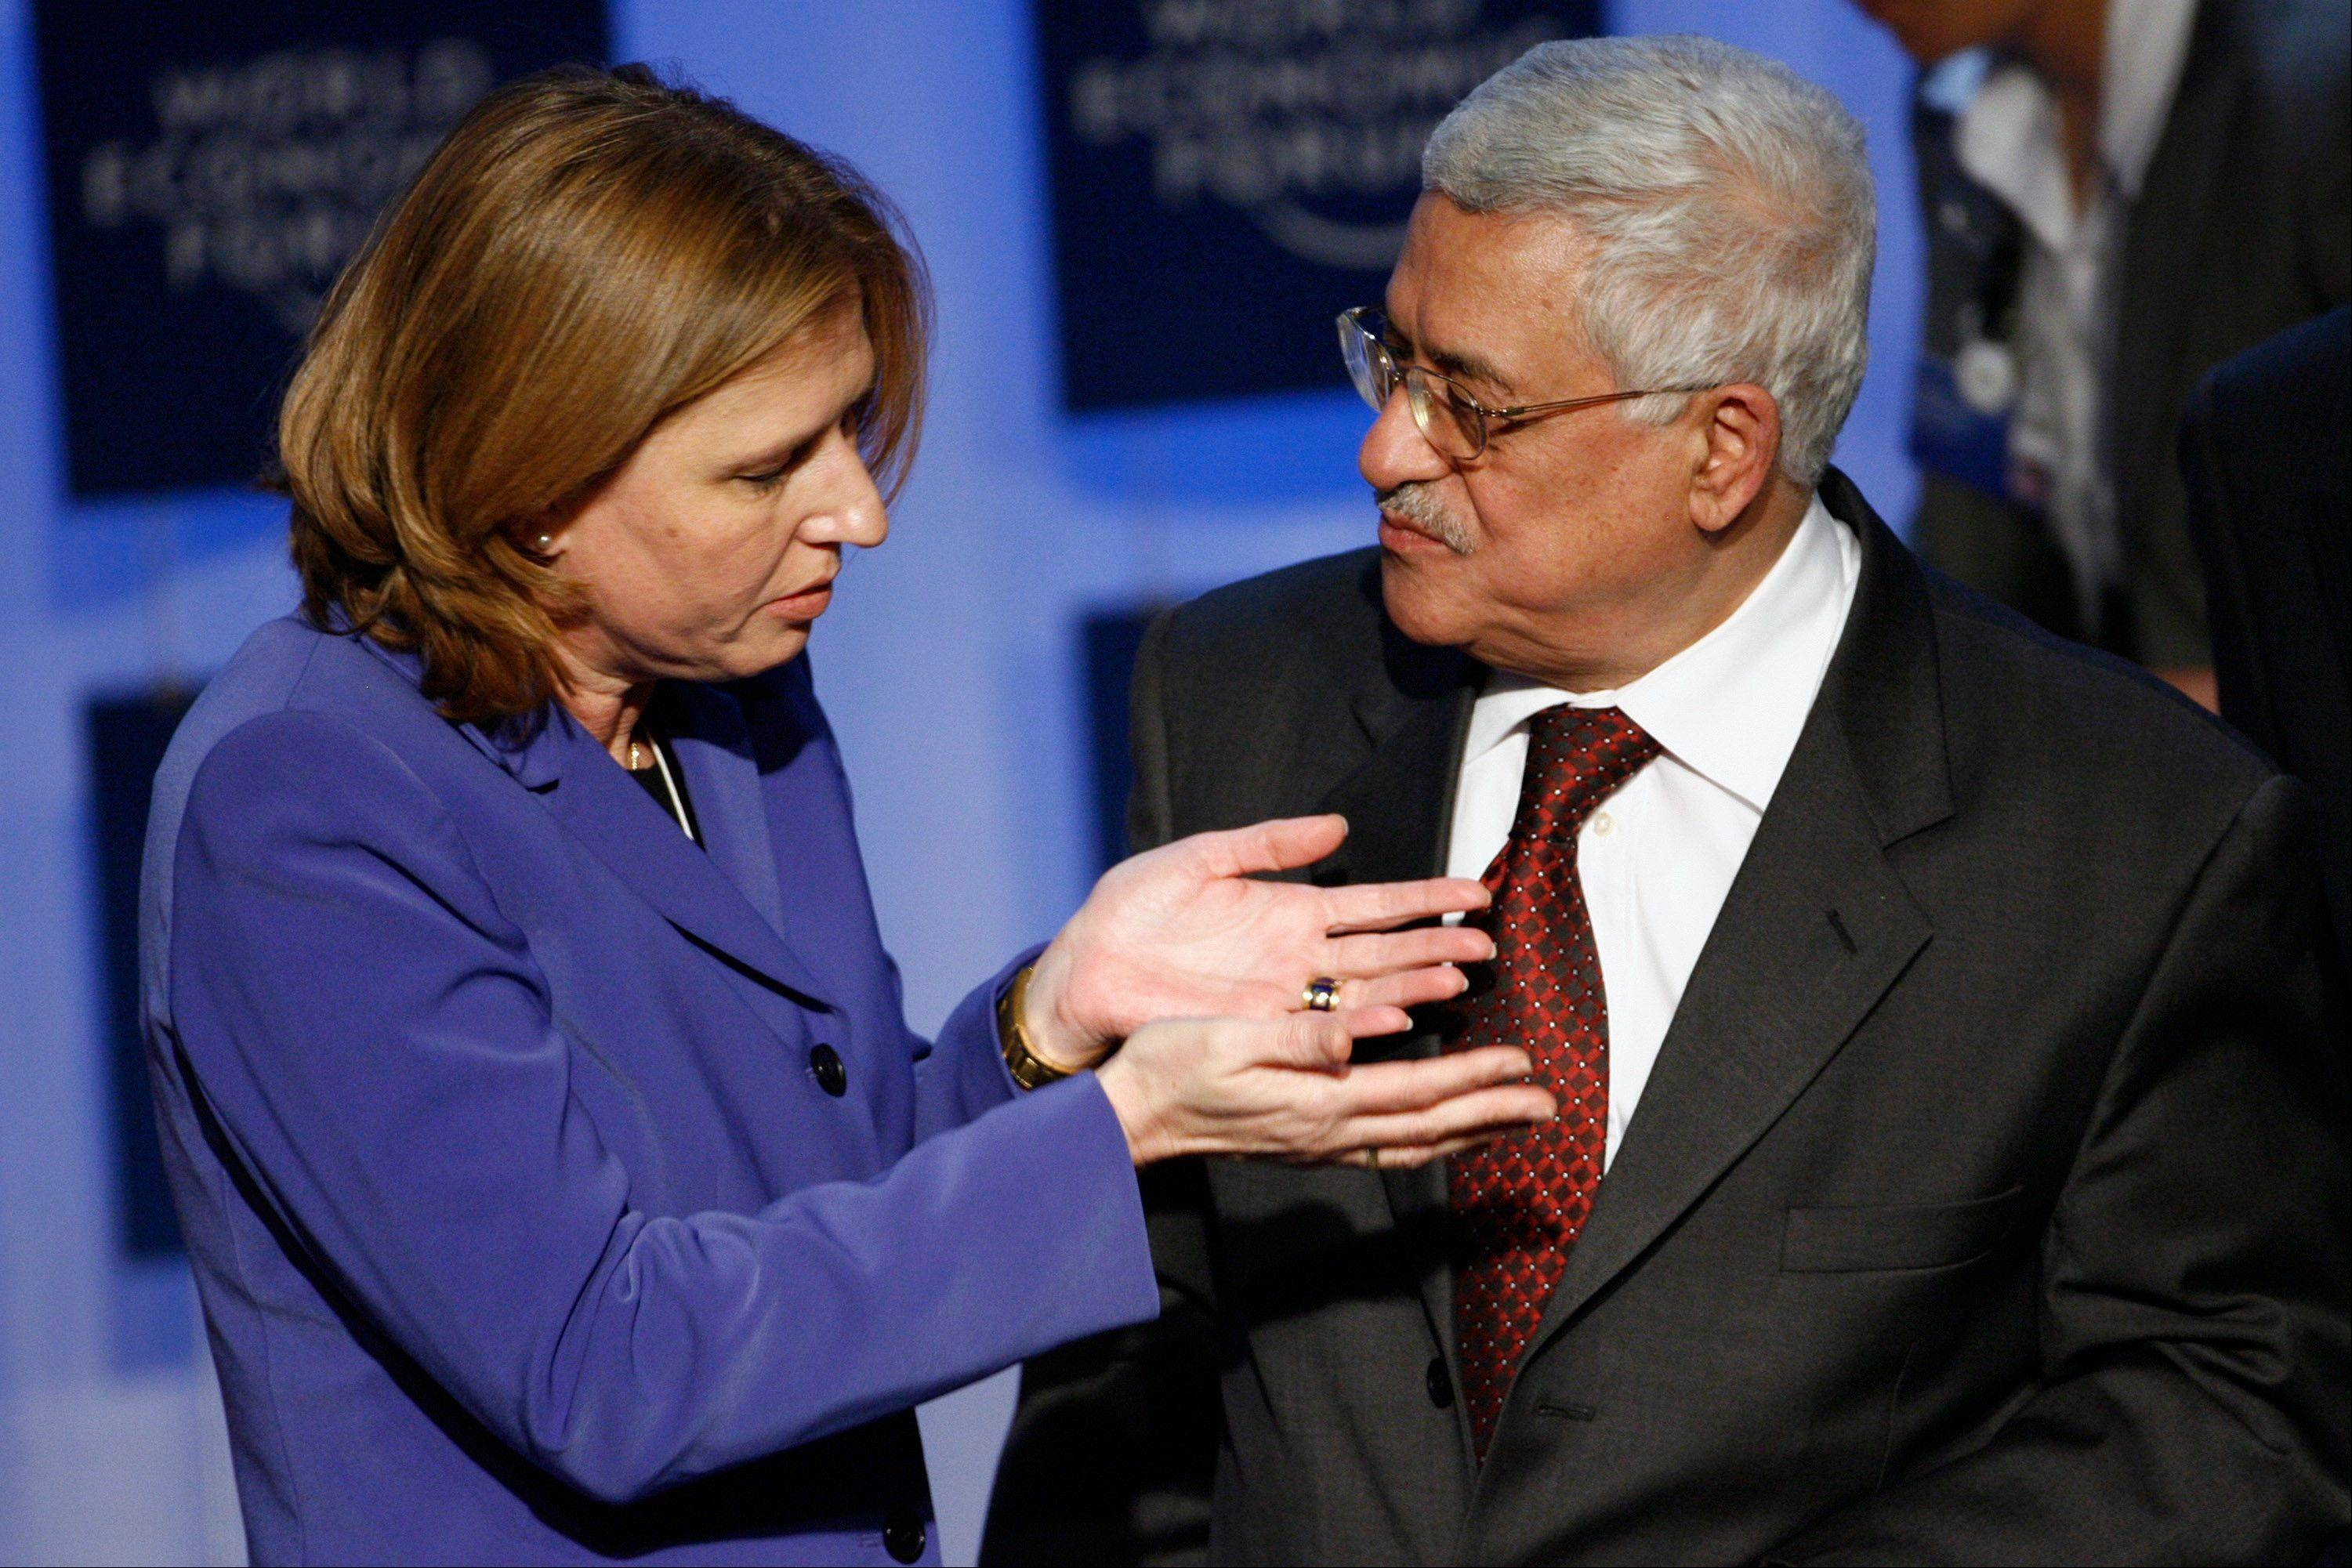 Israeli Foreign Minister Tzipi Livni, left, and President of the Palestinian Authority Mahmoud Abbas meet during the World Economic Forum in Davos, Switzerland, in 2007. The Palestinian president will invite Israeli politicians to the West Bank to try to make sure peacemaking is on the new government�s agenda, a senior official said Thursday.